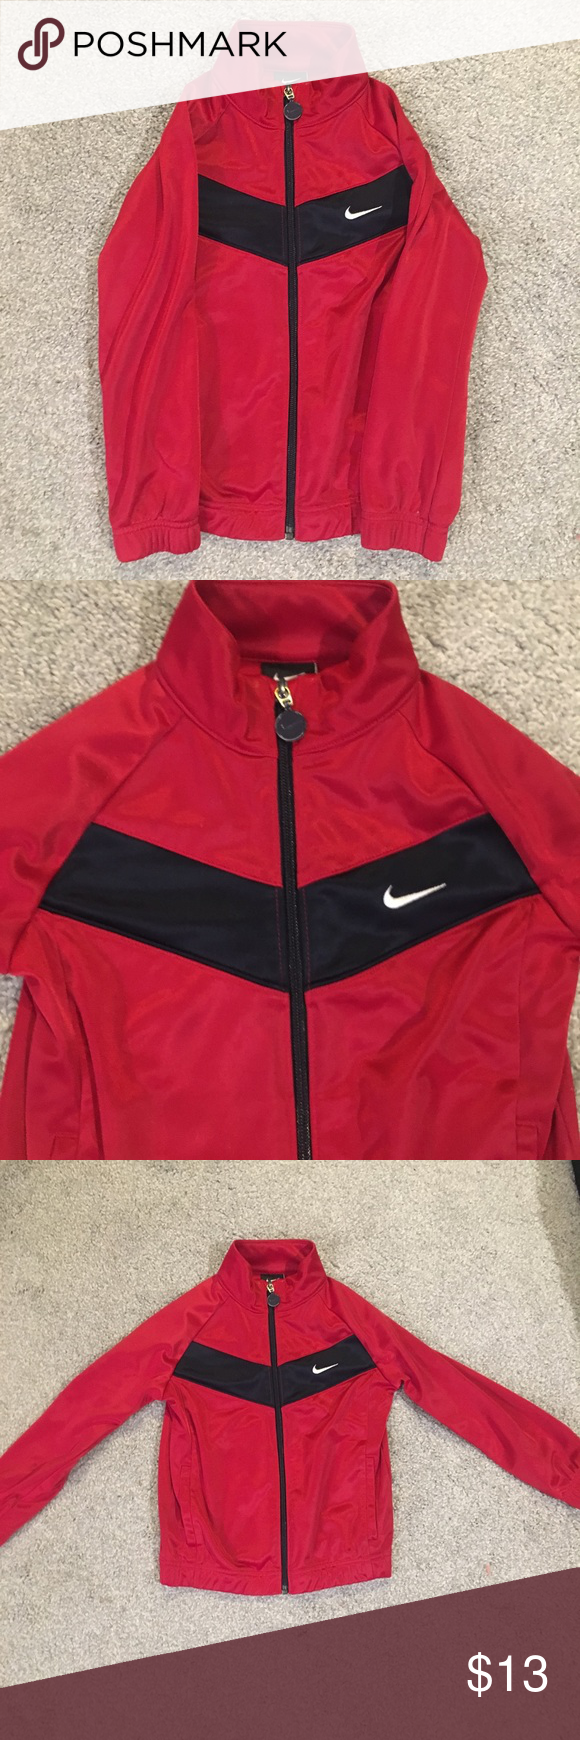 df4a86cae222 Little Boys  Nike Jacket Red Nike zip up jacket with a light fleece lining.  Black stripe across front and back. EUC Nike Jackets   Coats